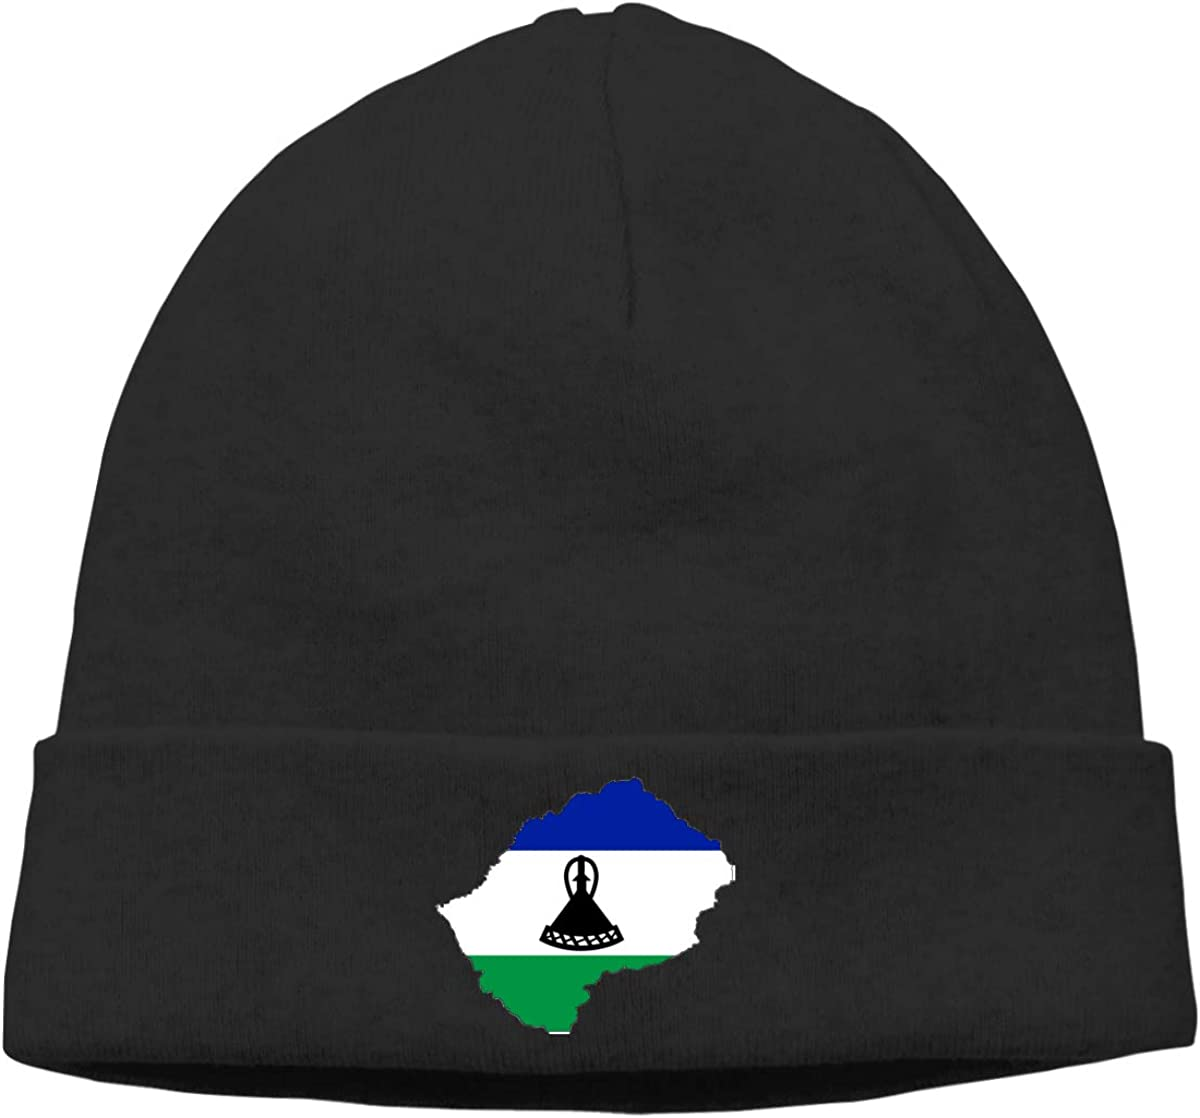 Nskngr Flag-Map/_of/_Lesotho Cap Unisex Cuffed Serious Style Beanie Hats Ski Slouchy Hat